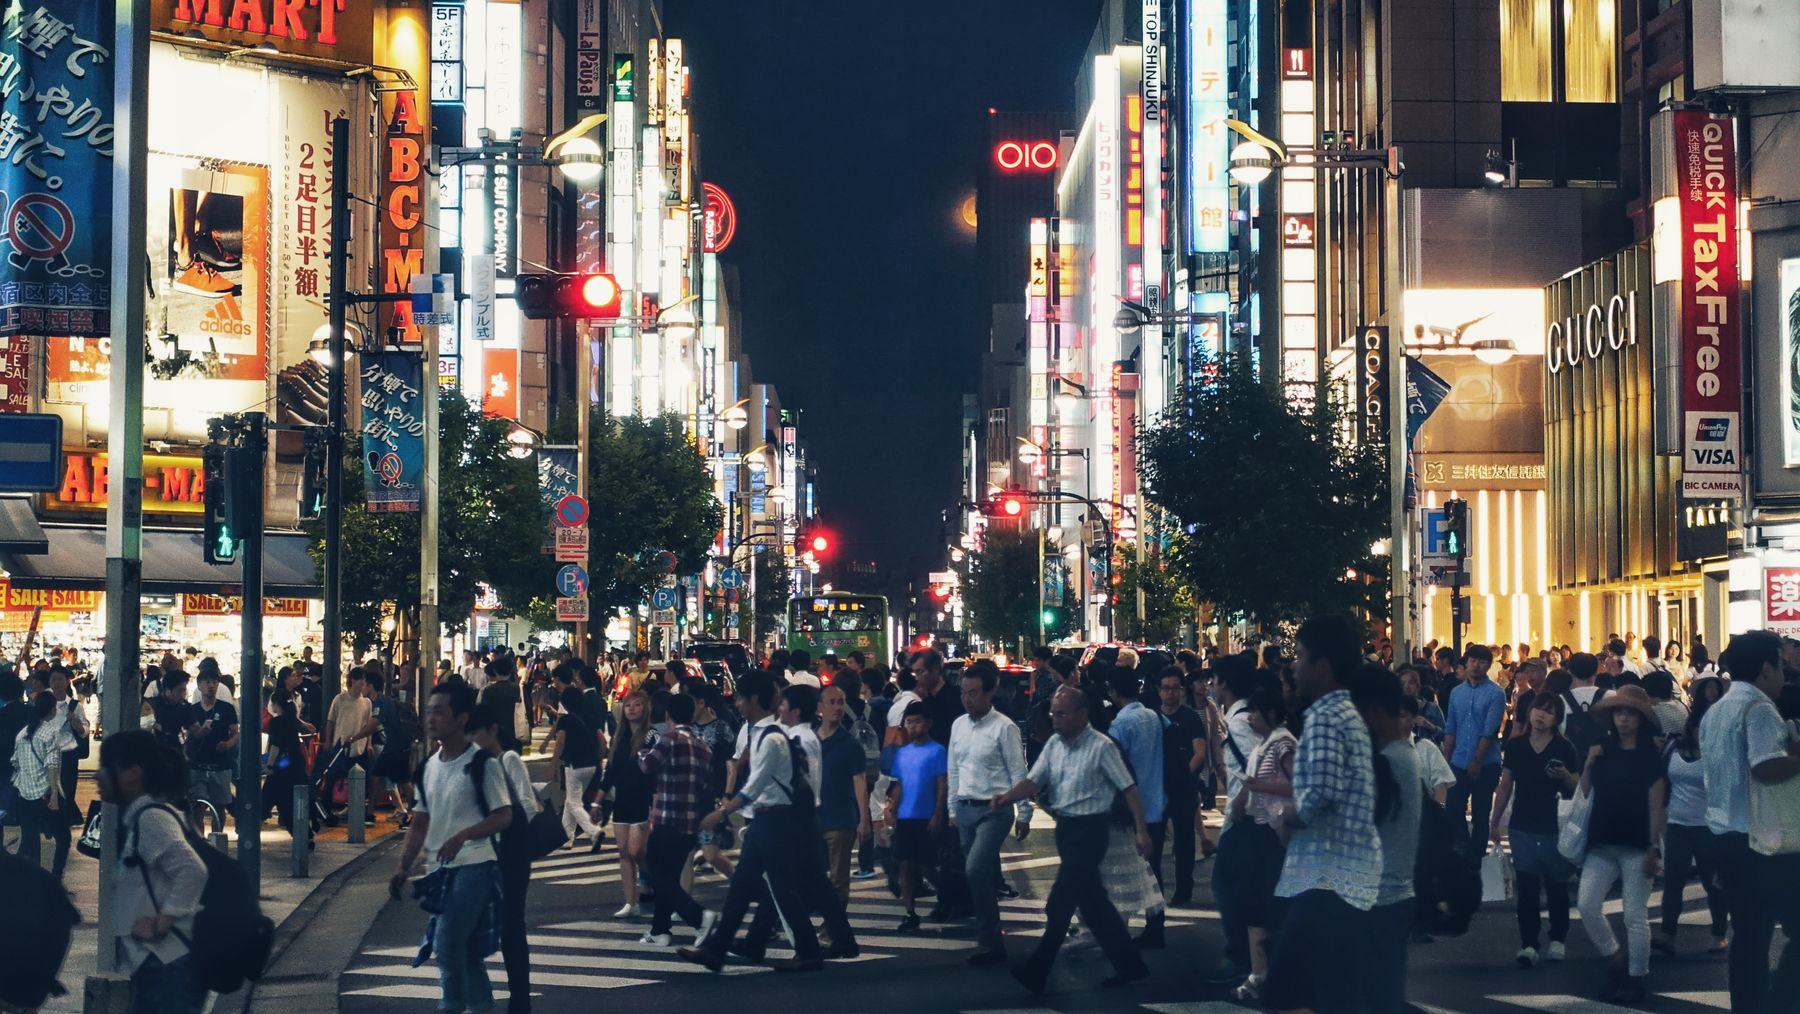 Tokyo, in Japan, is one of the destinations you can virtually travel to by means of travel shows on Netflix and other platforms